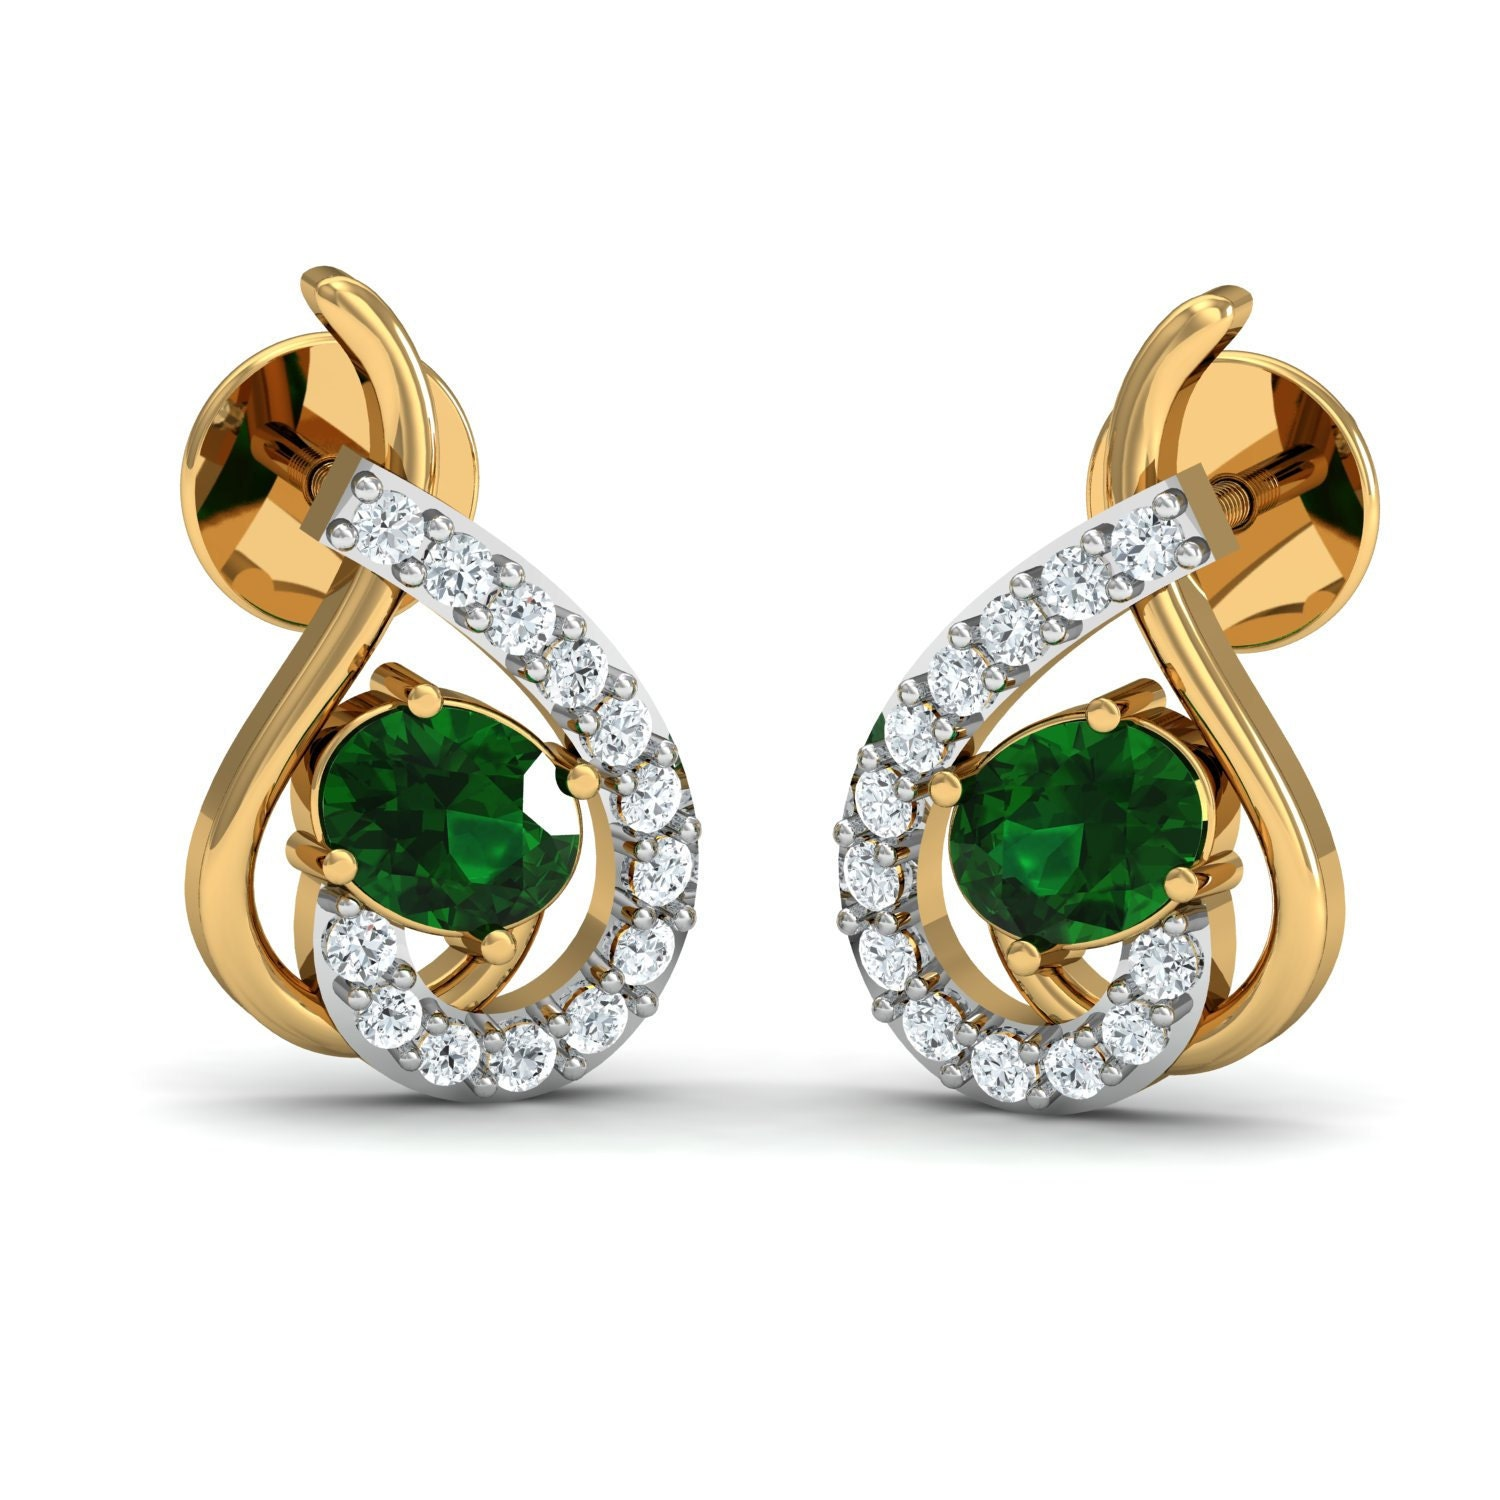 Unique emerald diamond earrings by Gem select crafts